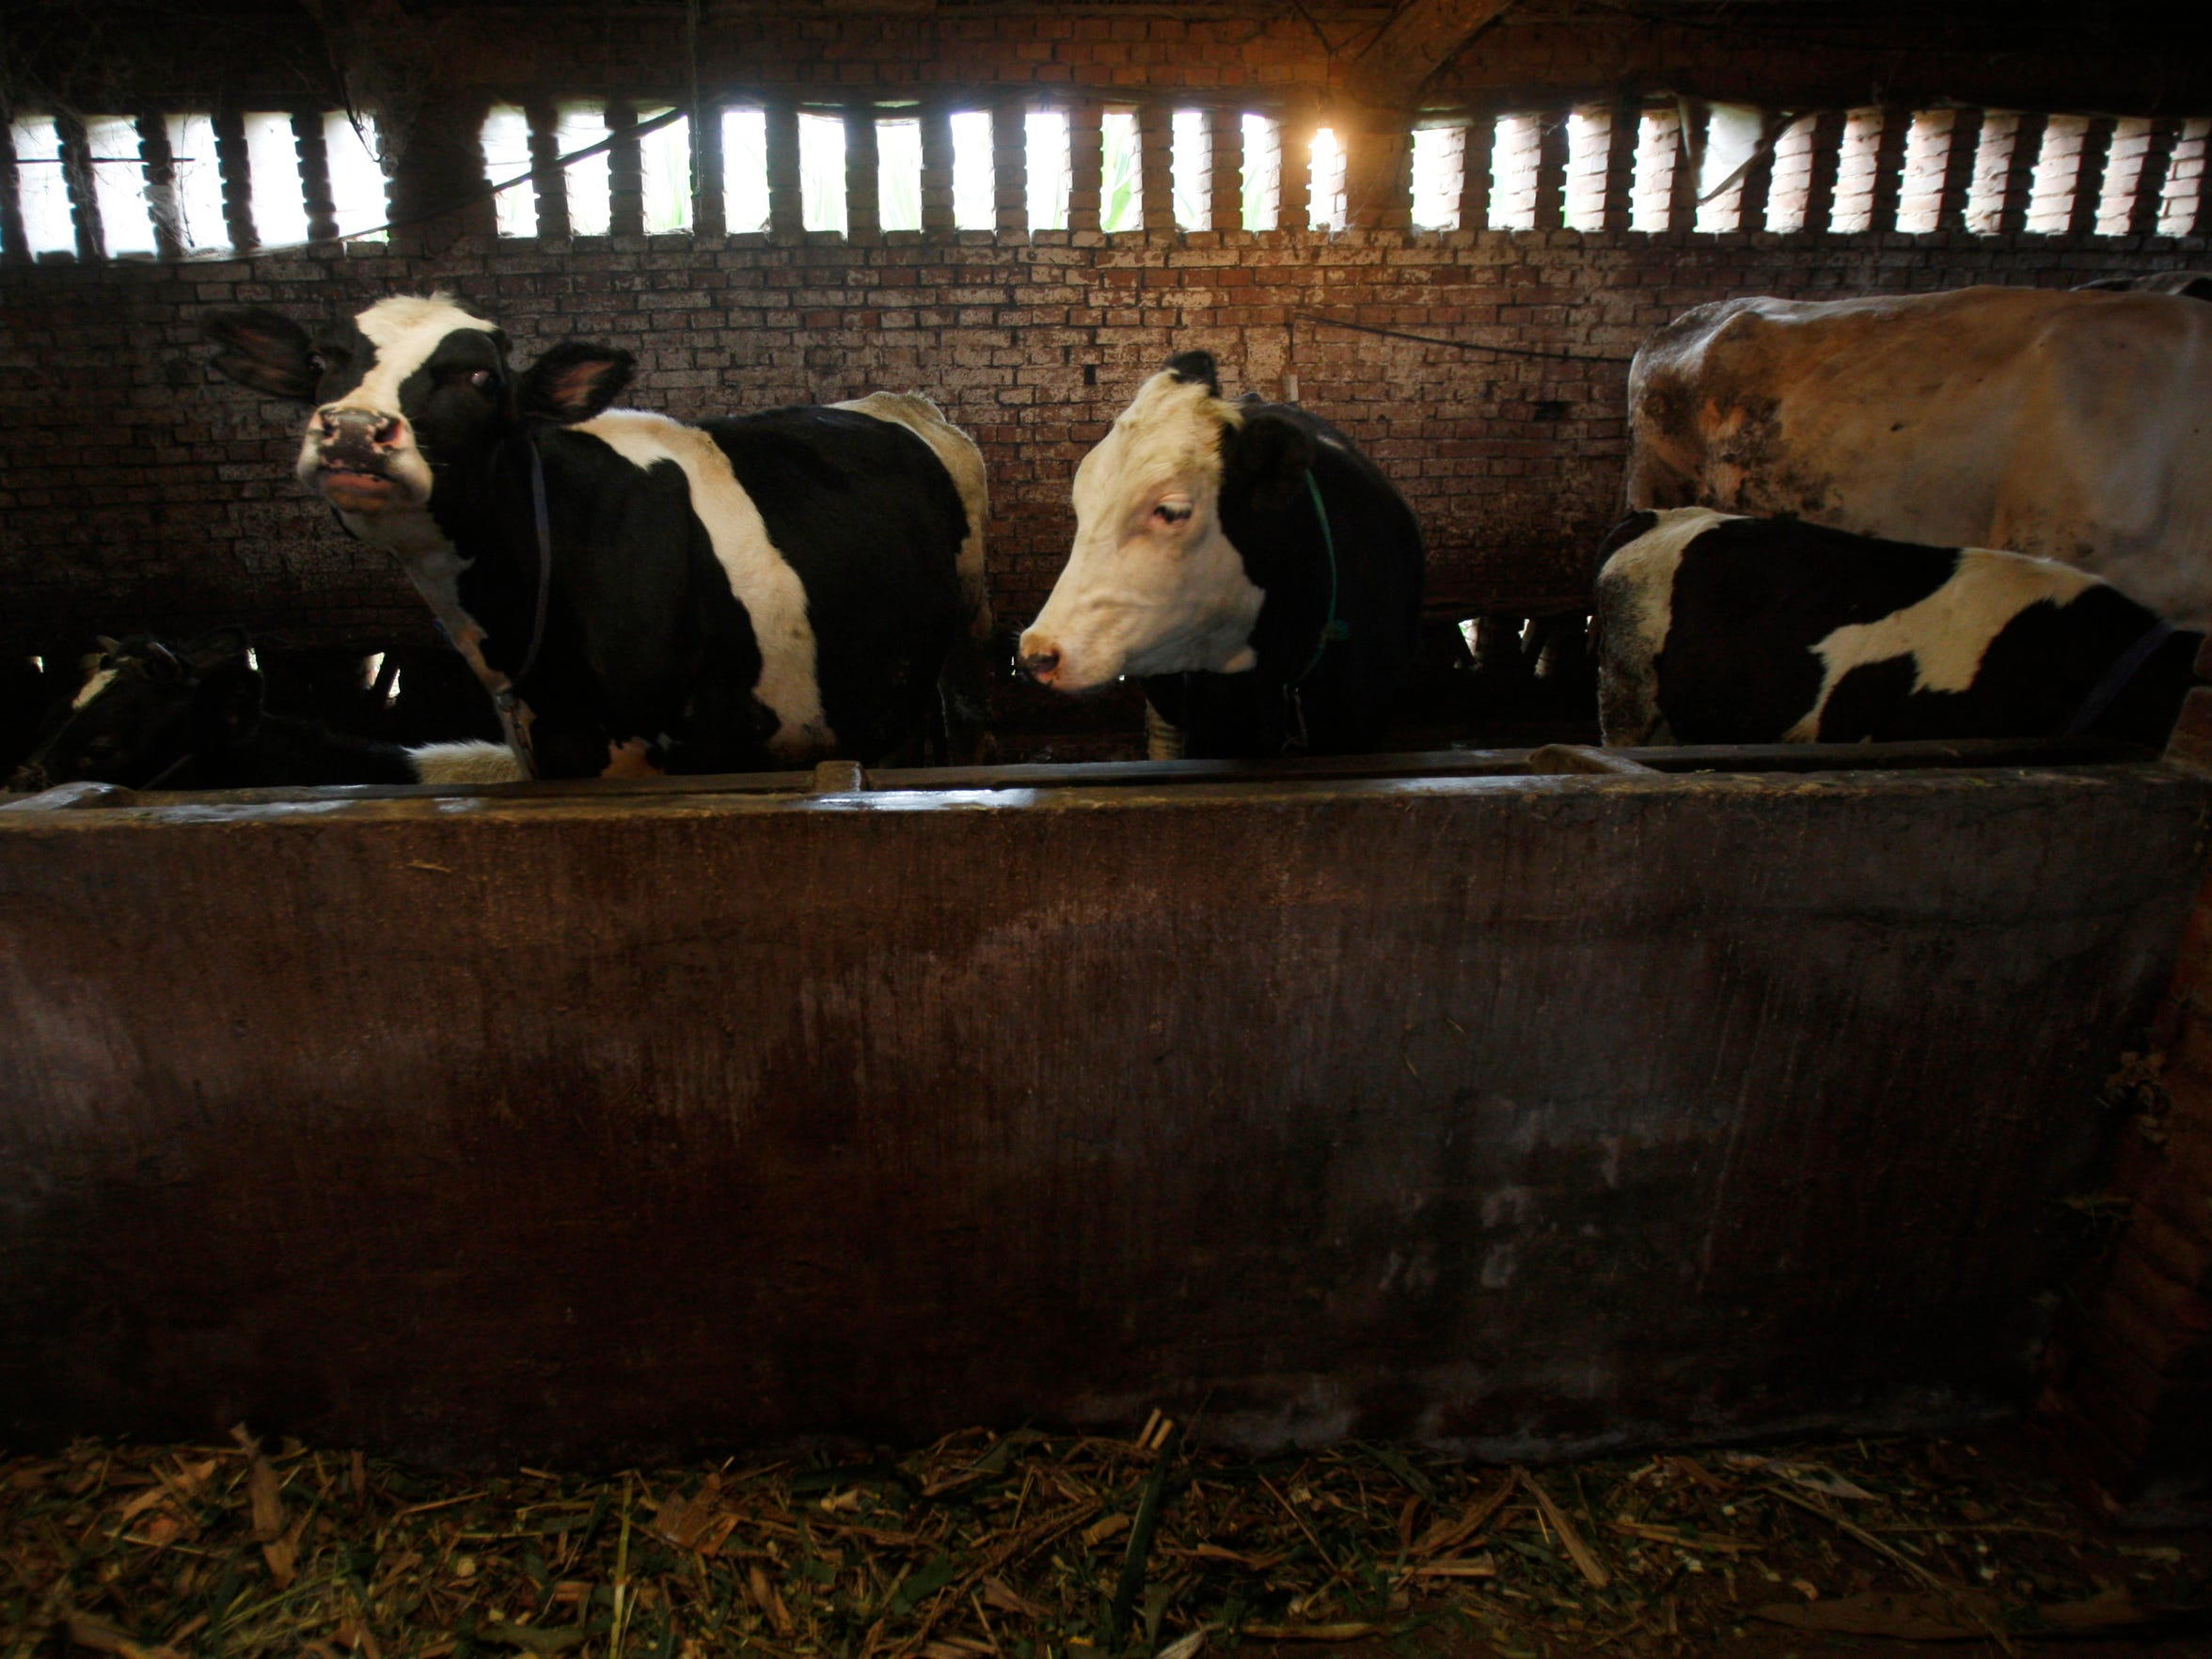 Milk cows are seen at a farm near Zhengting, northern